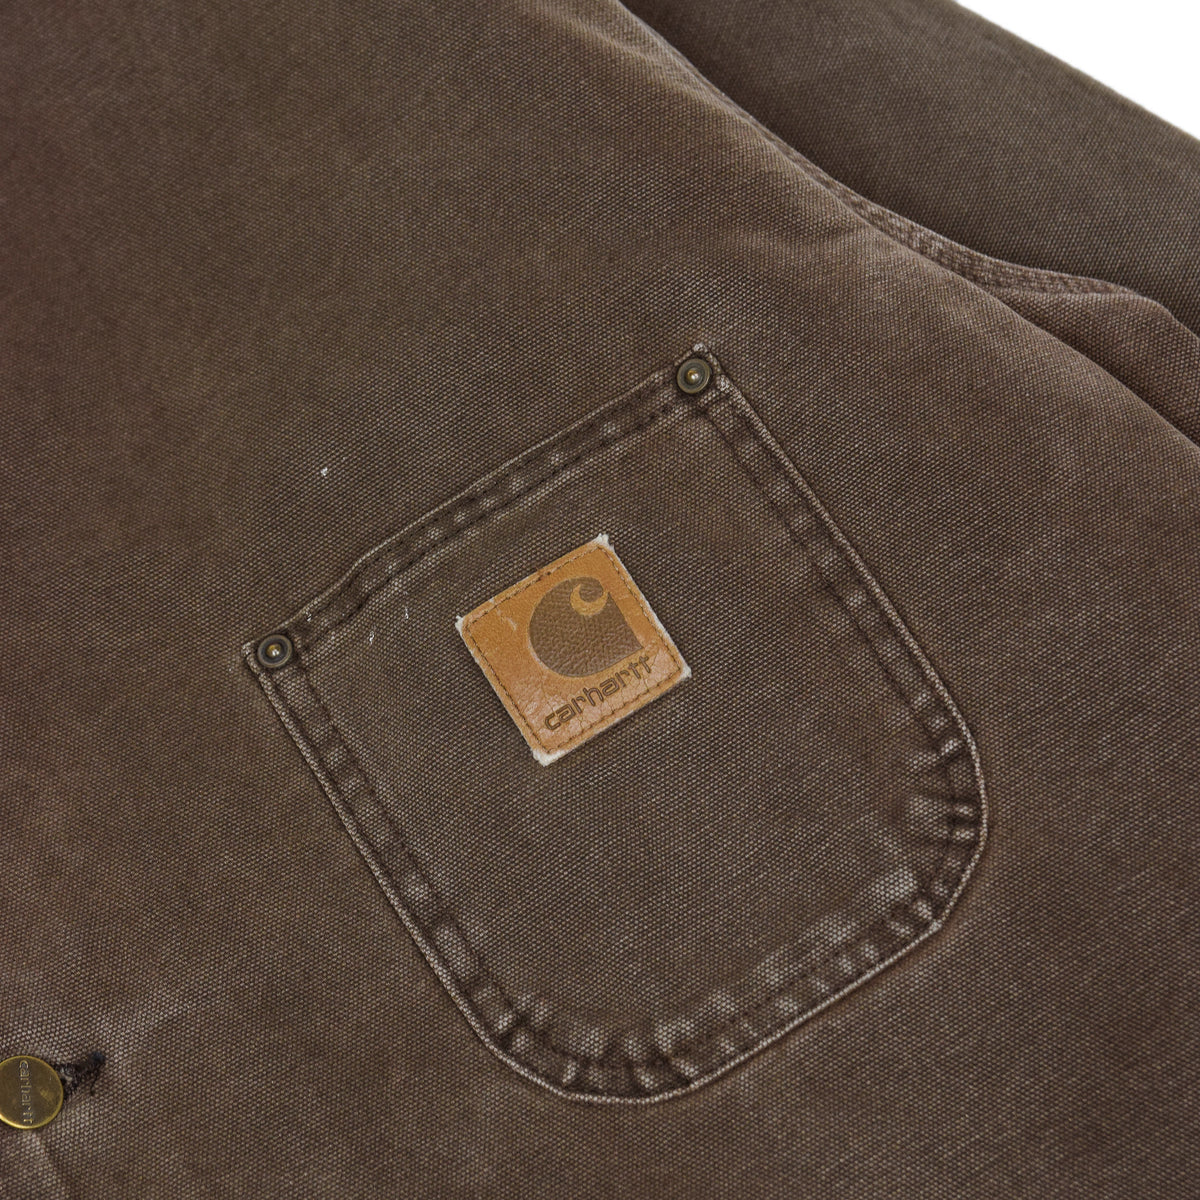 Vintage Carhartt Michigan Blanket Lined Brown Worker Chore Jacket Made in USA XL pocket detail